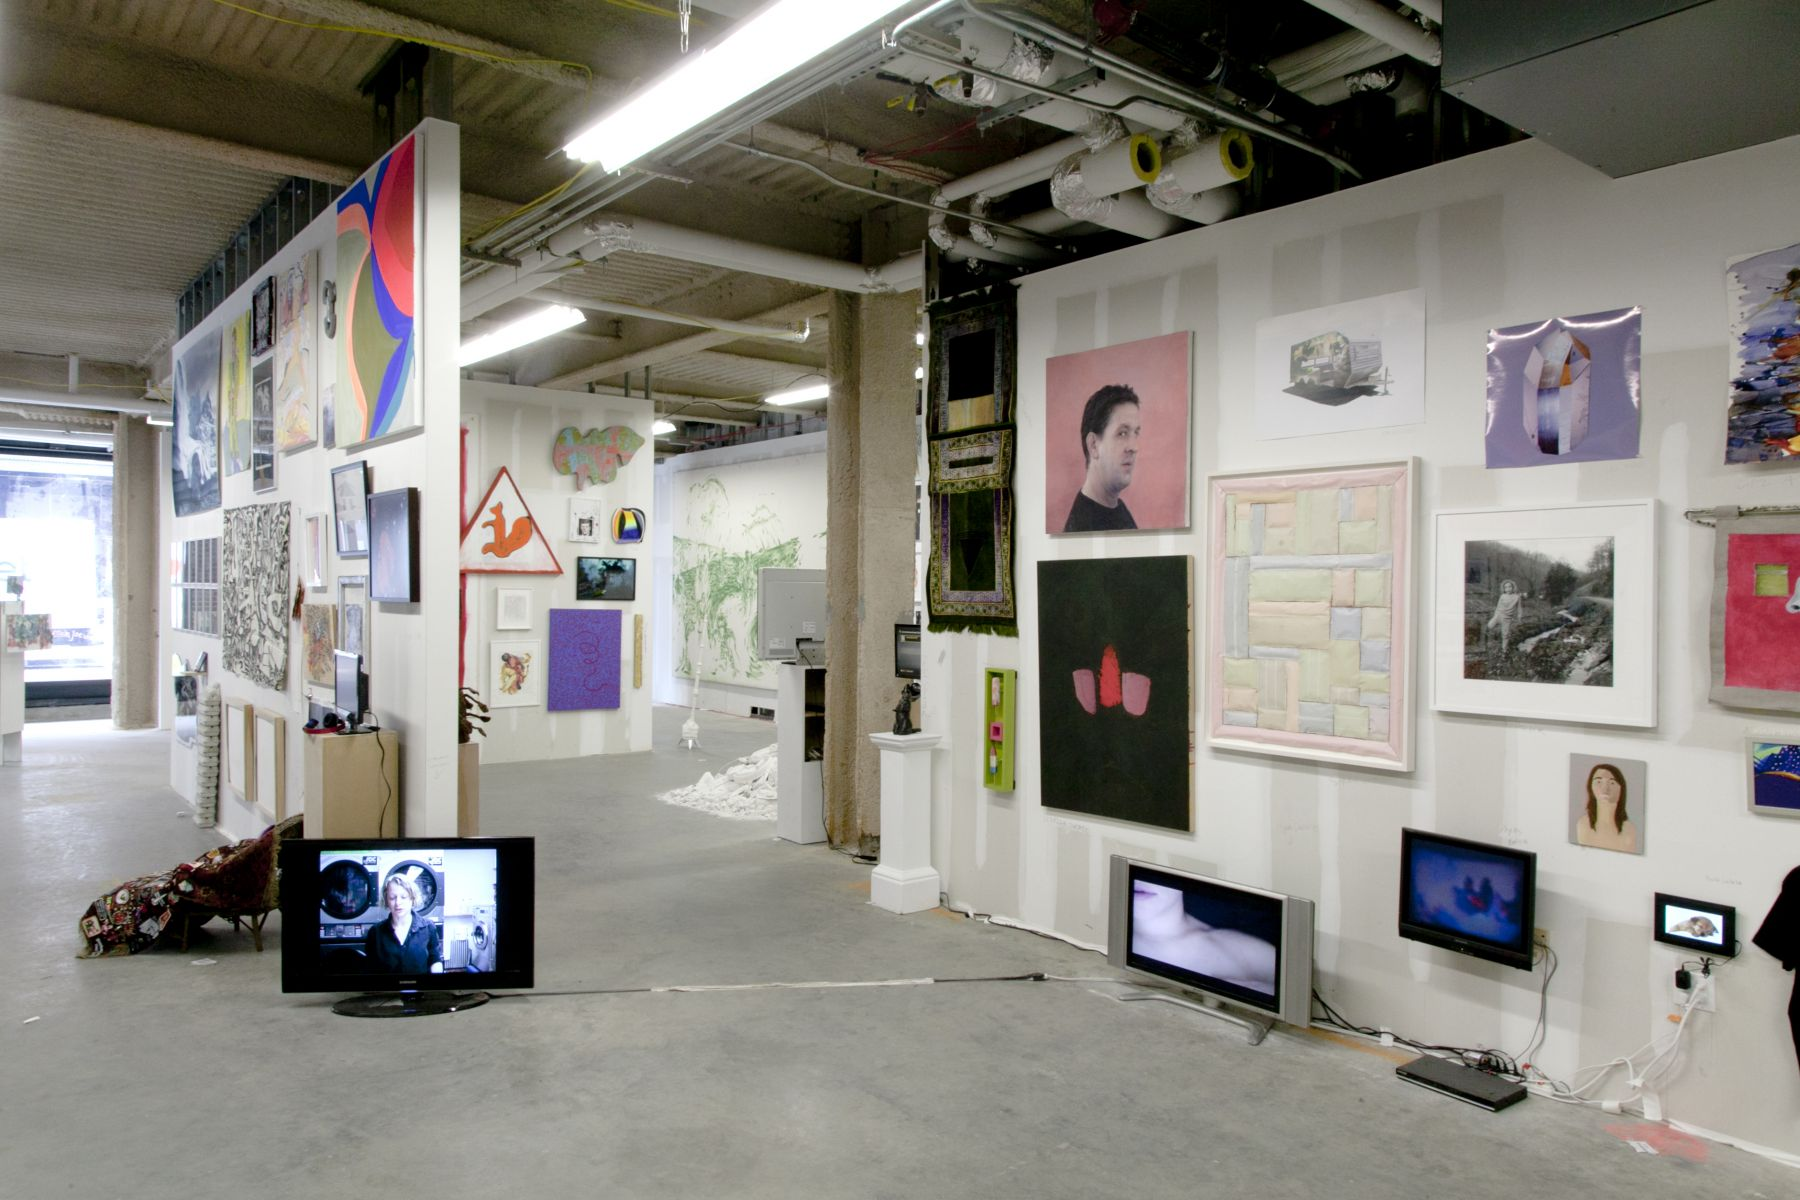 Installation view, The Bruce High Quality Foundation, The Last Brucennial, New York, 2014